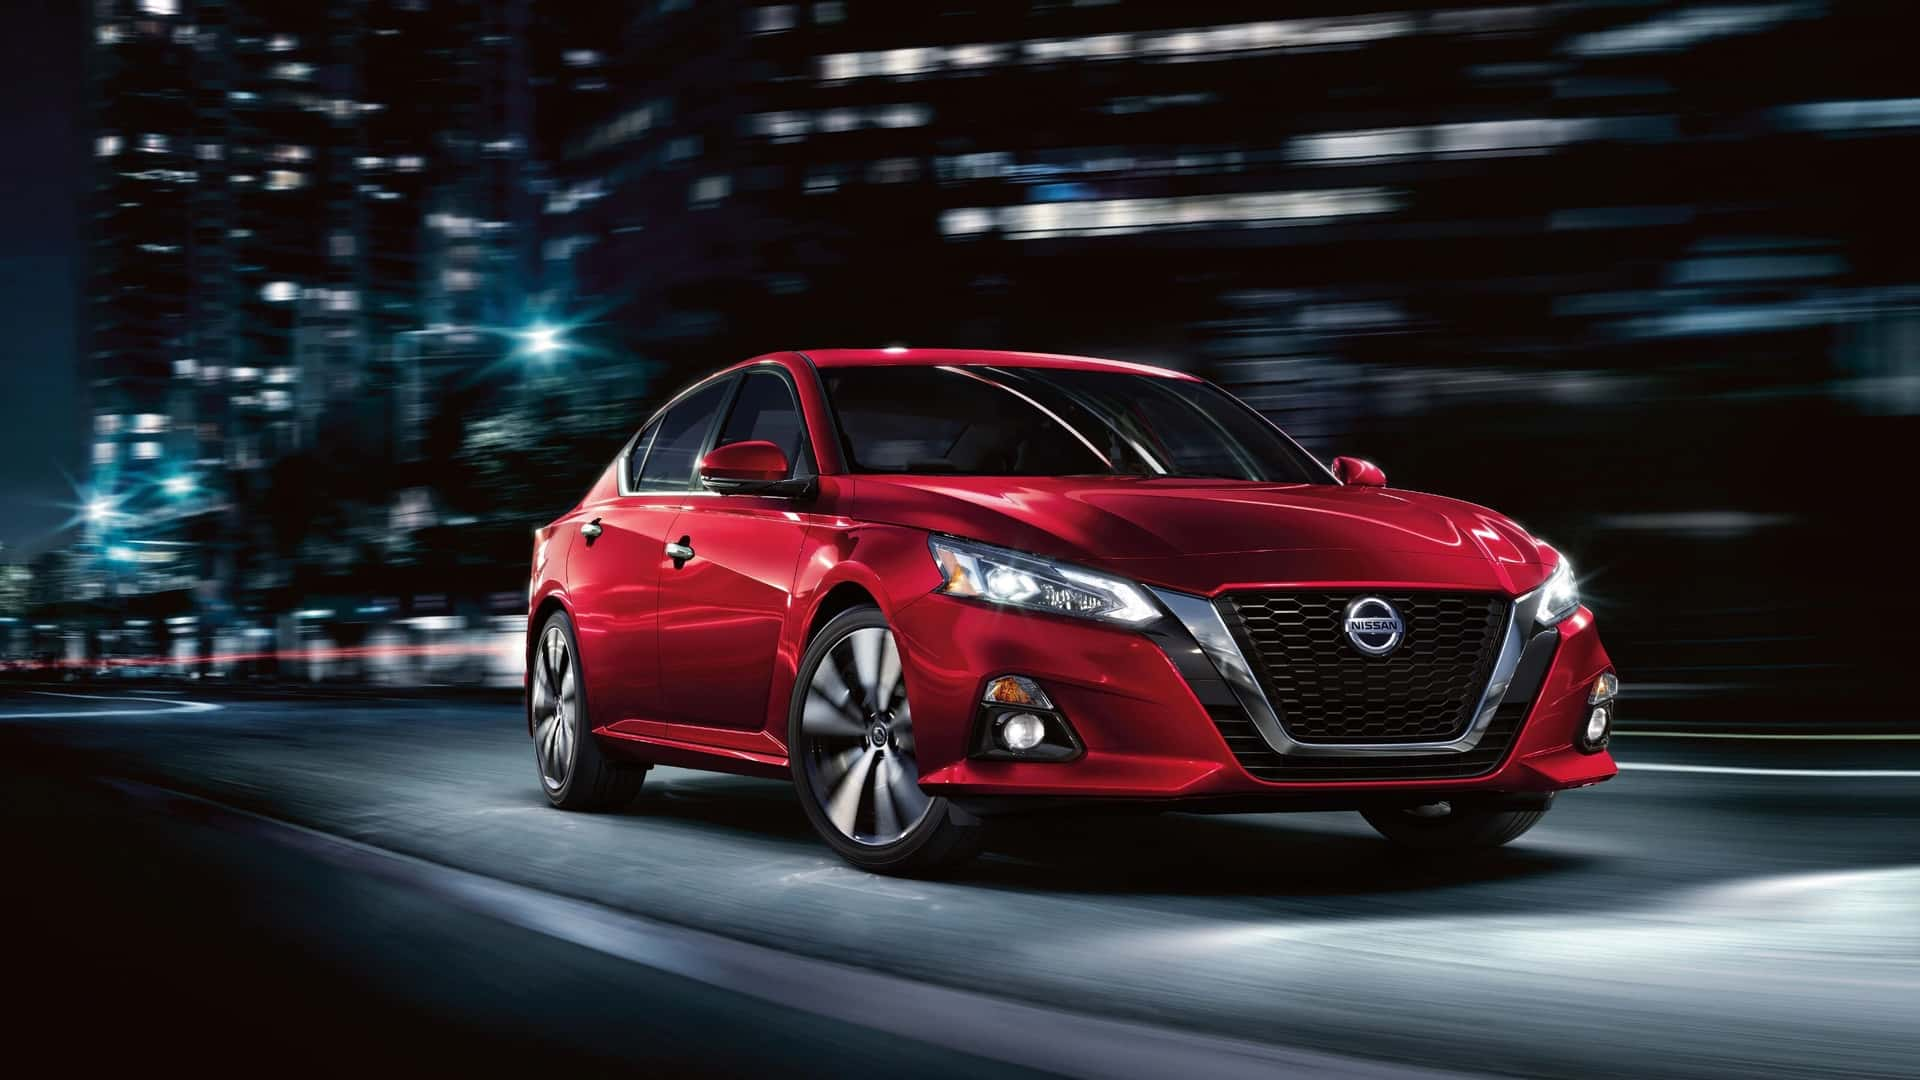 Explore the 2020 Nissan Altima near DeLand FL